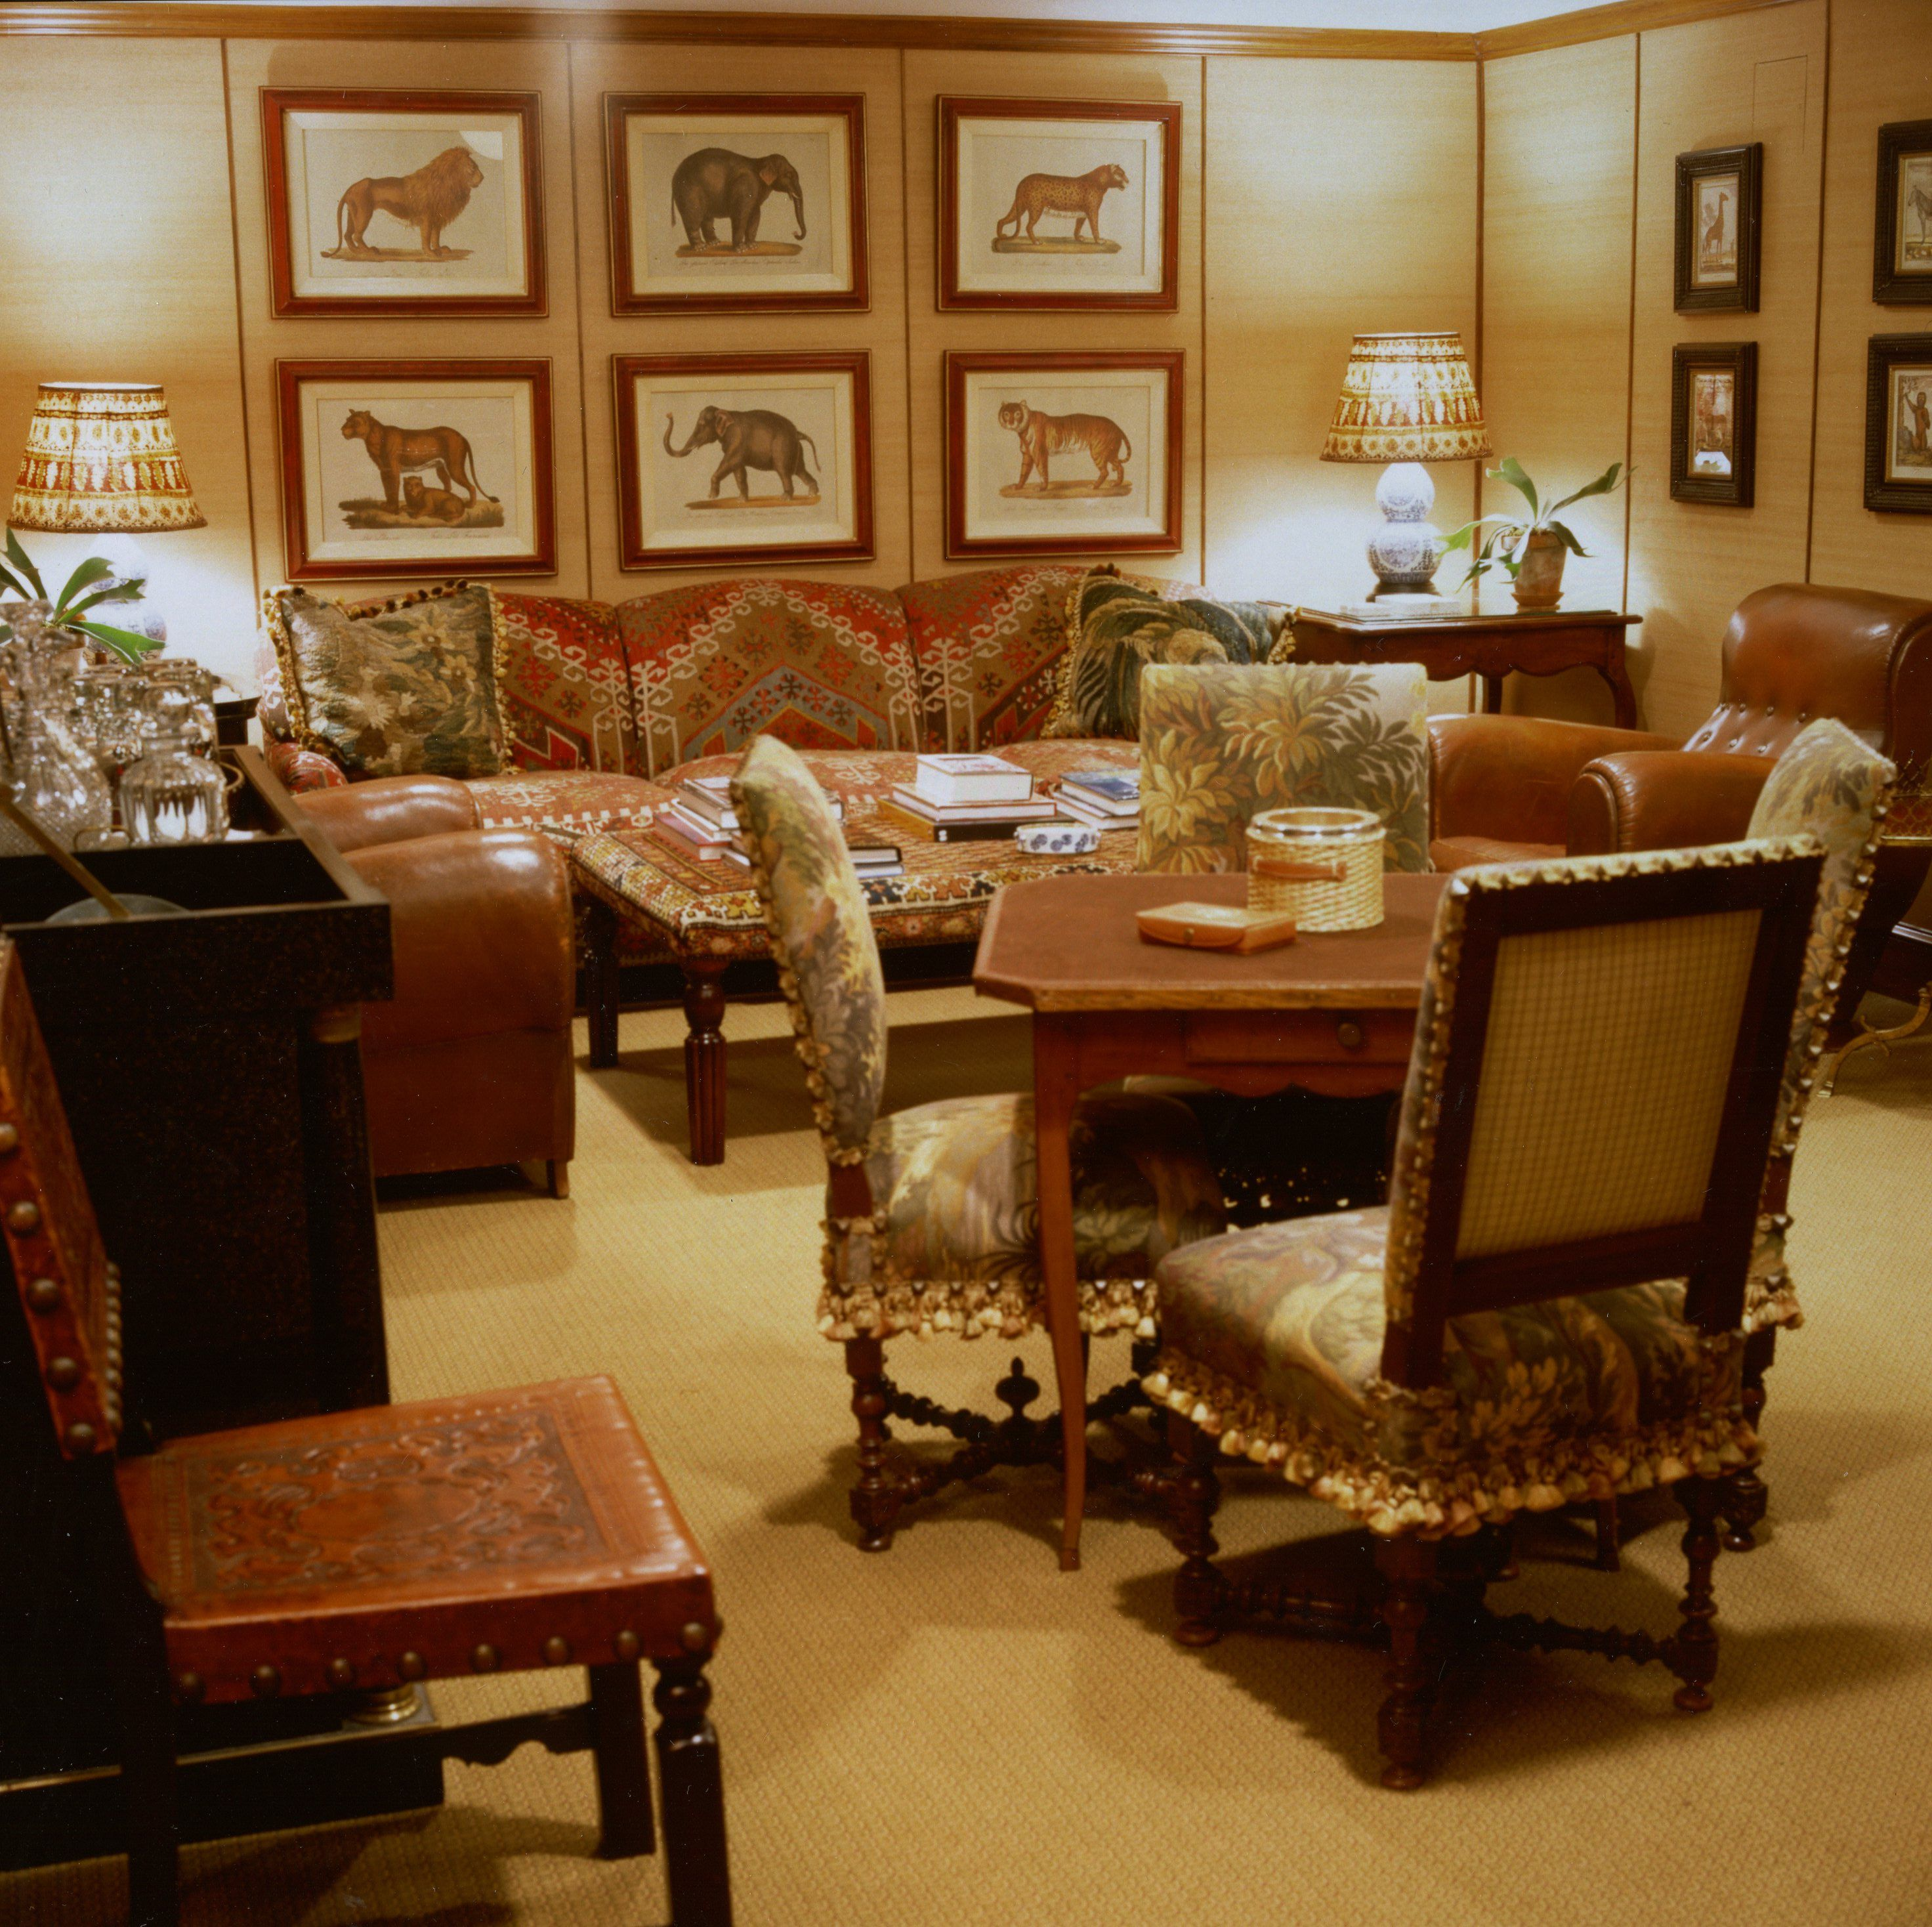 Card Room In Country House, Howard Slatkin